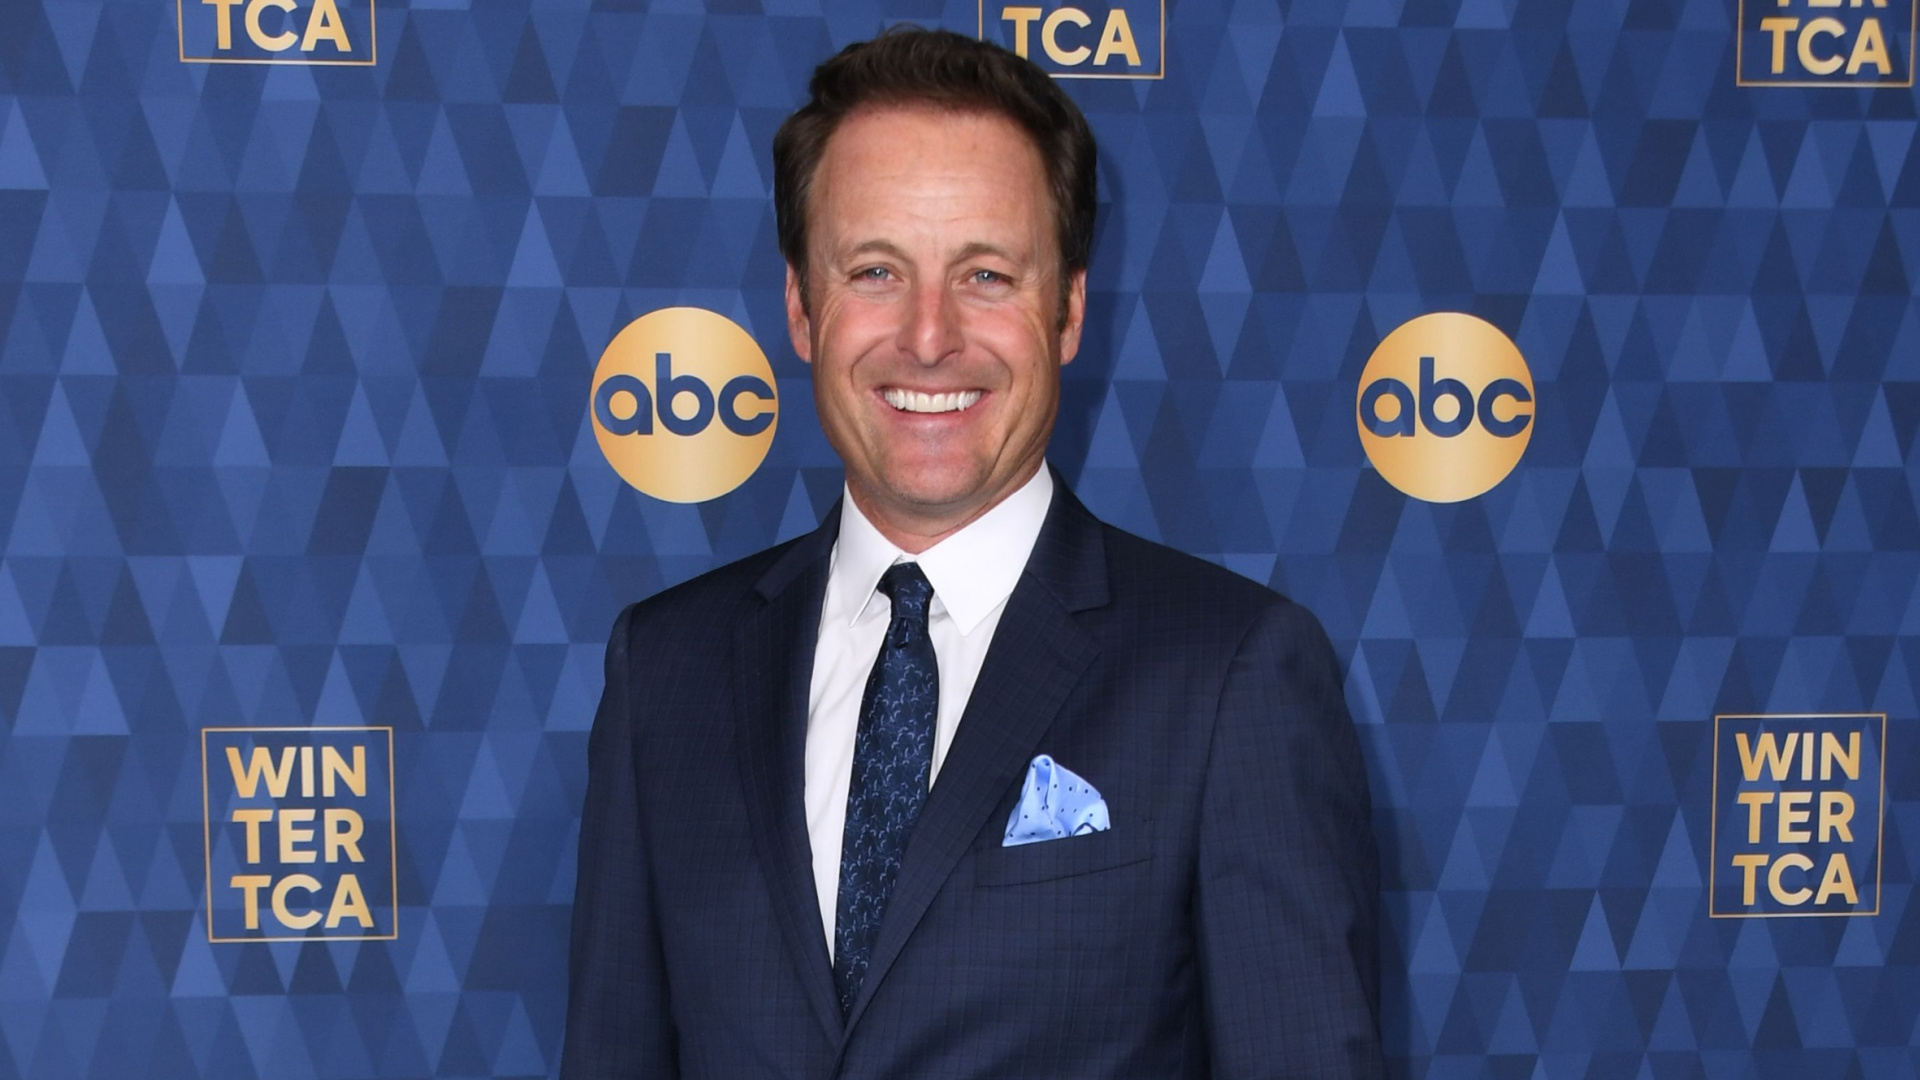 Chris Harrison attends ABC's Winter TCA 2020 Press Tour in Pasadena on Jan. 8, 2020. (VALERIE MACON/AFP via Getty Images)